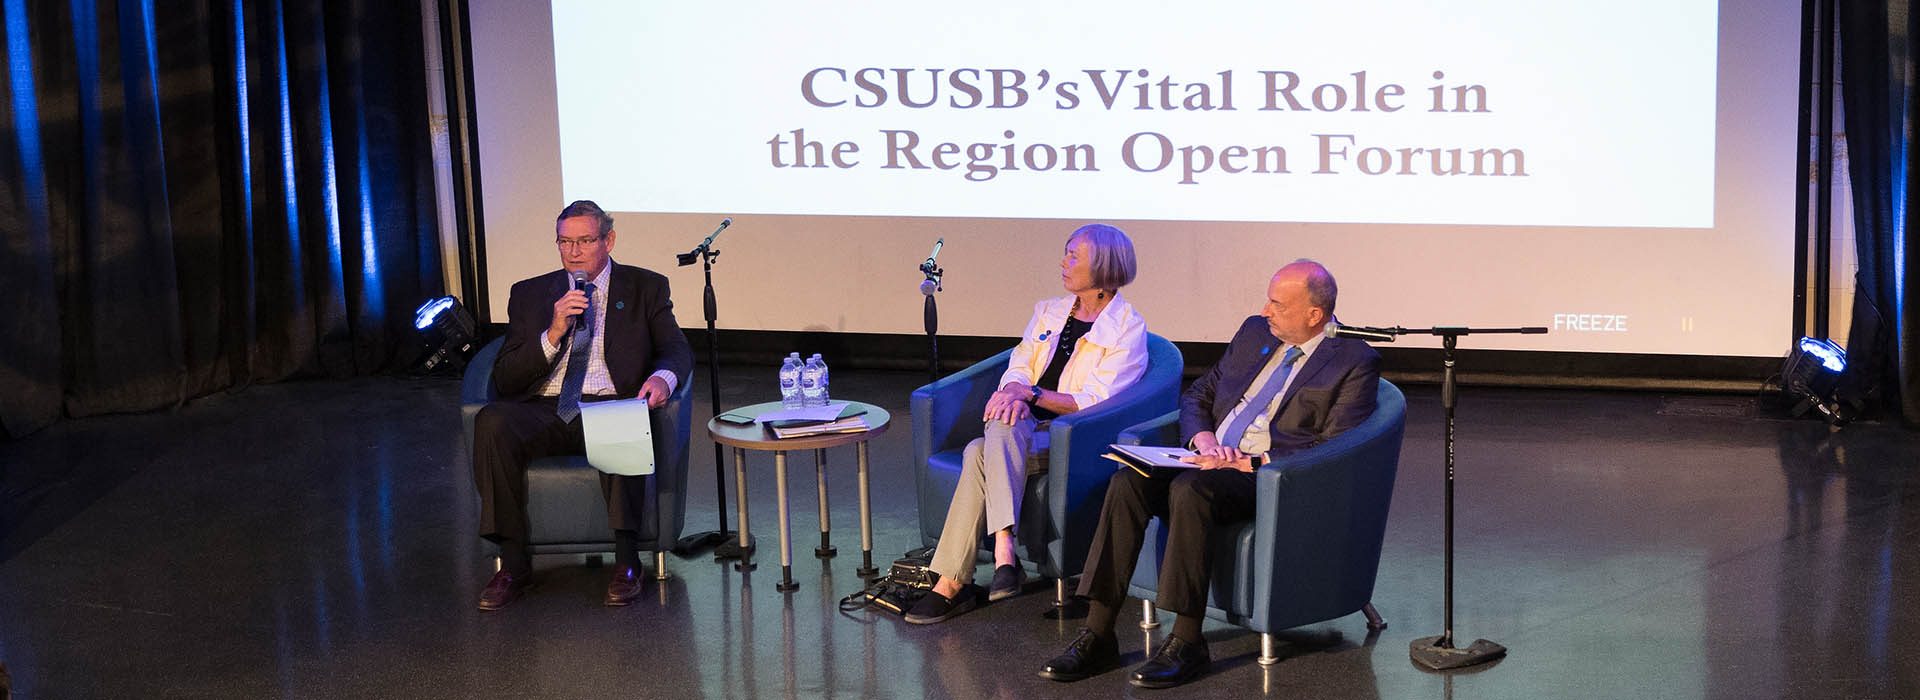 CSU Chancellor White discusses Cal State San Bernardino's vital role in the region